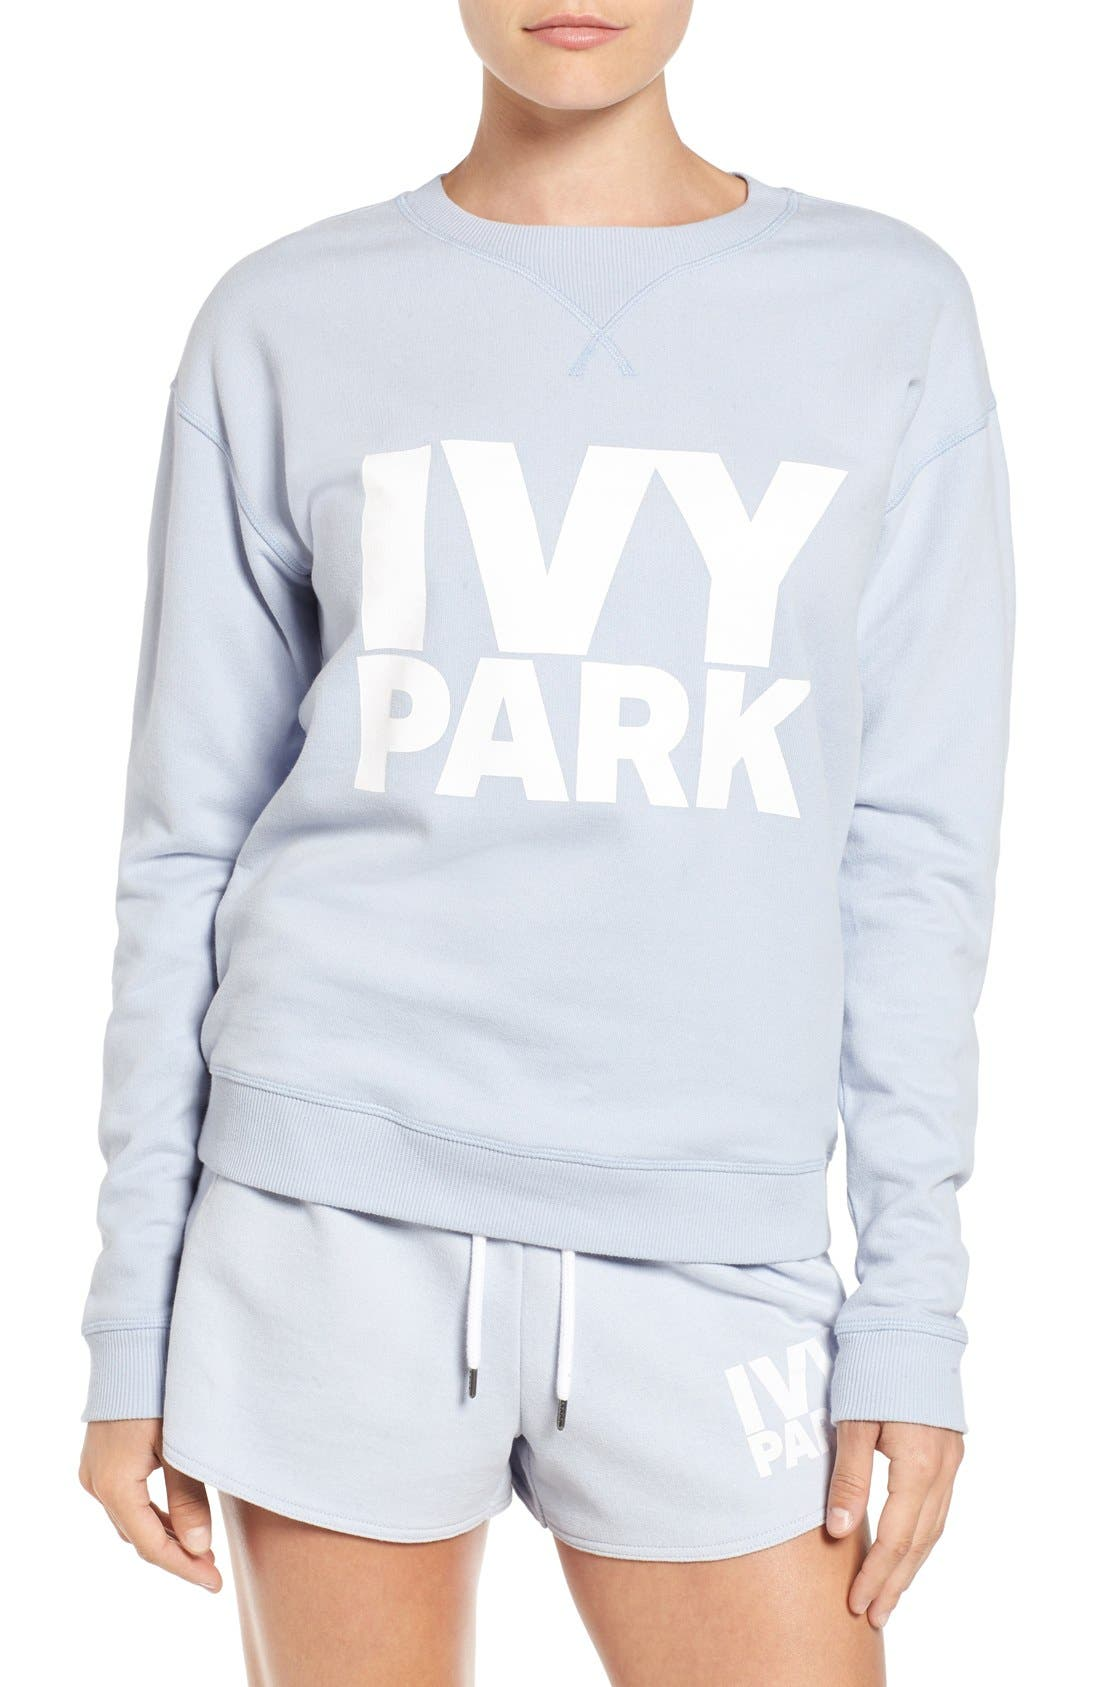 Main Image - IVY PARK® Logo Peached Sweatshirt